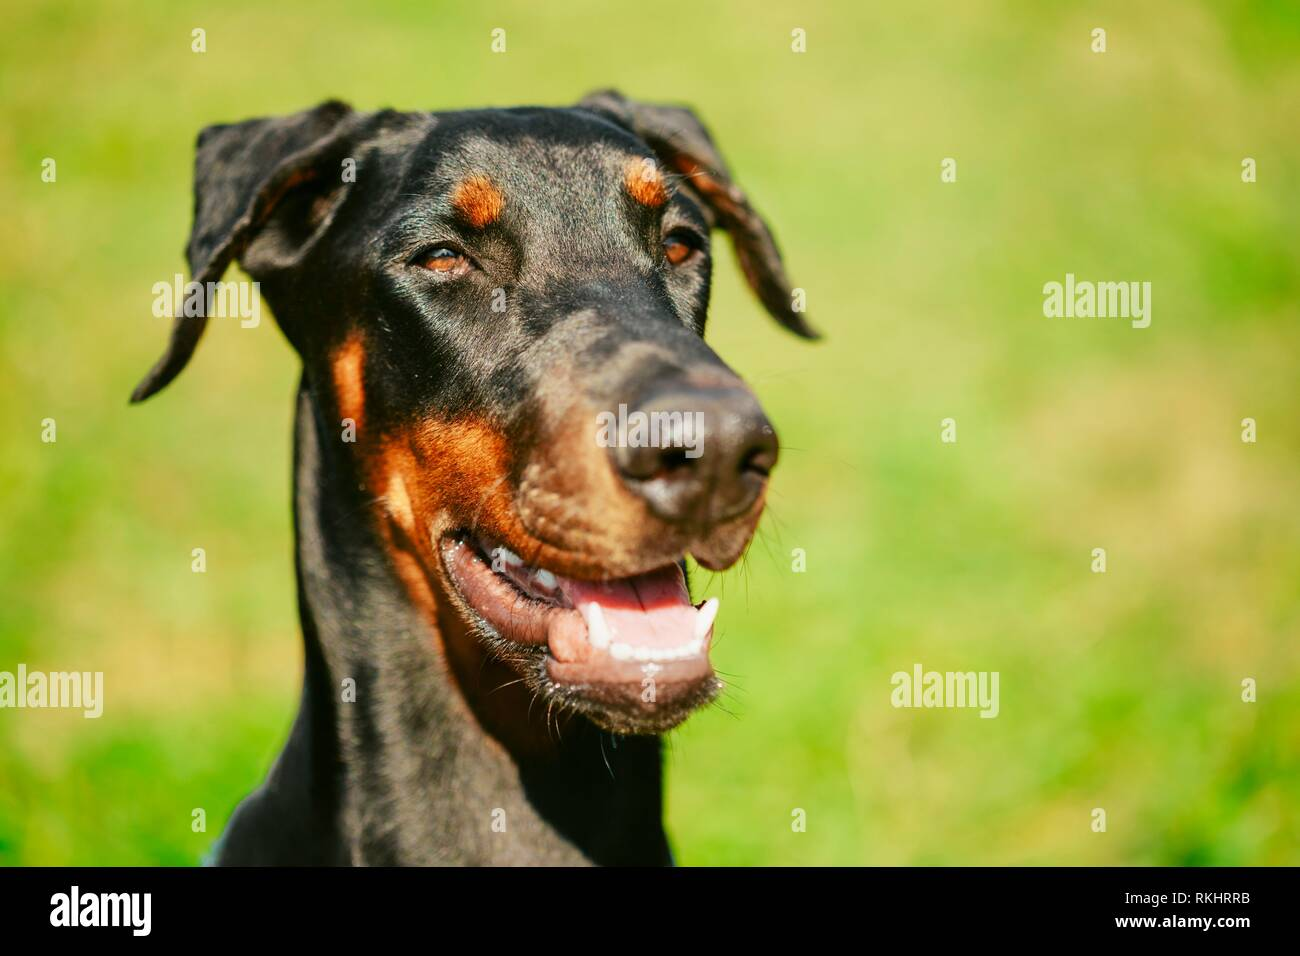 Young, Beautiful, Black And Tan Doberman Standing On The Lawn. Dobermann Is A Breed Known For Being Intelligent, Alert, And Loyal Companion Dogs. - Stock Image